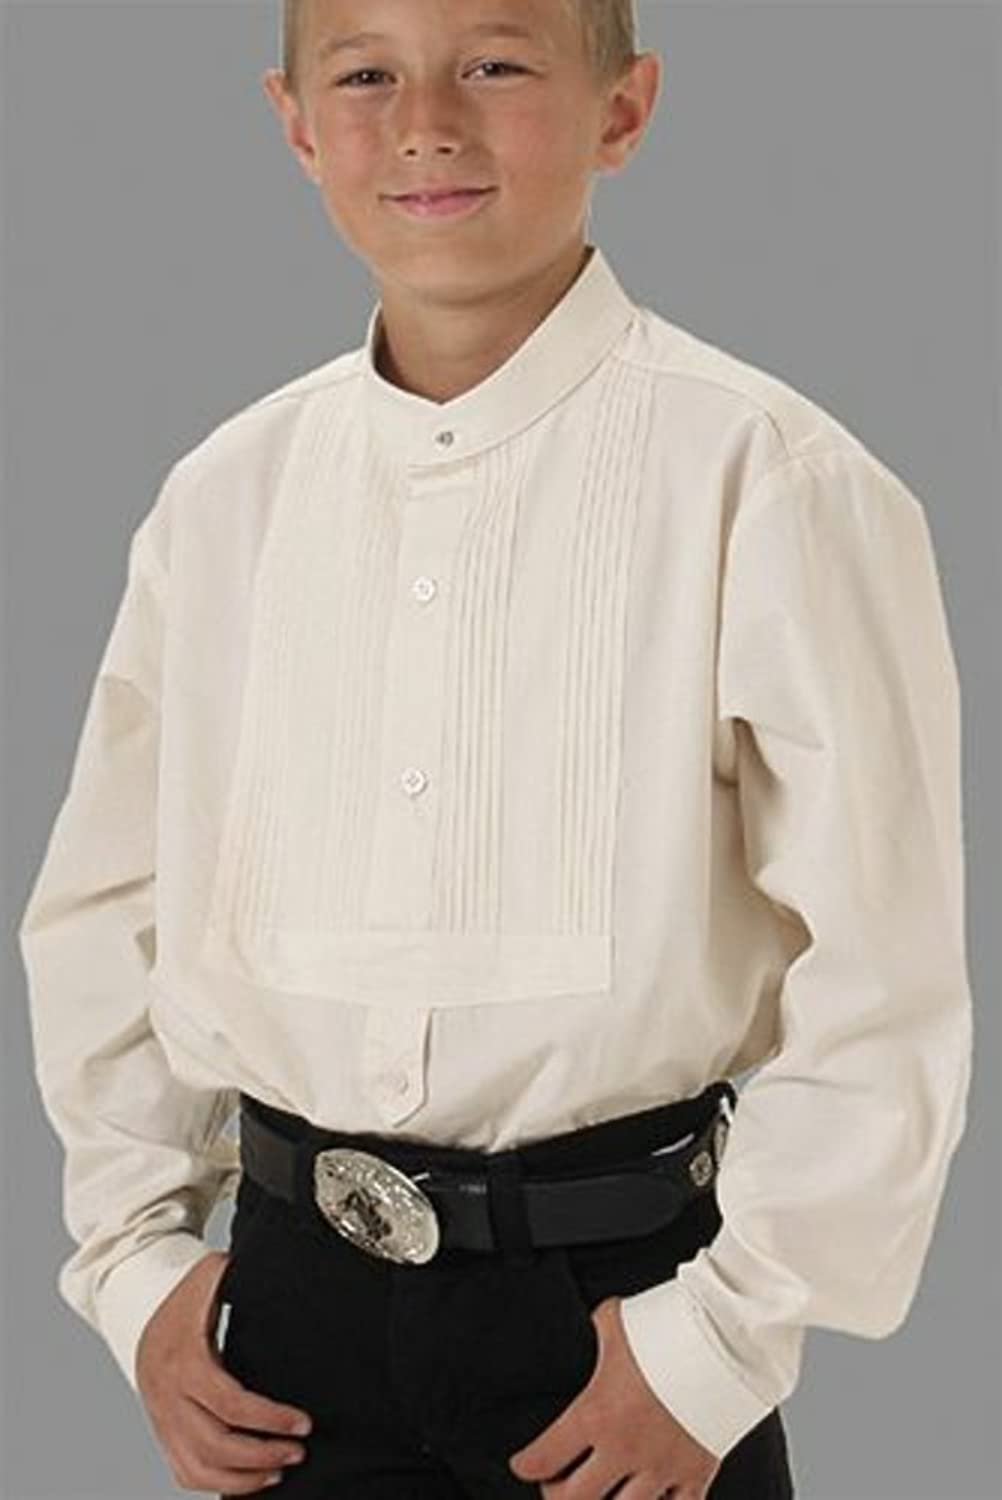 Victorian Kids Costumes & Shoes- Girls, Boys, Baby, Toddler Boys Frontier Banded Collar Shirt Large White $51.95 AT vintagedancer.com